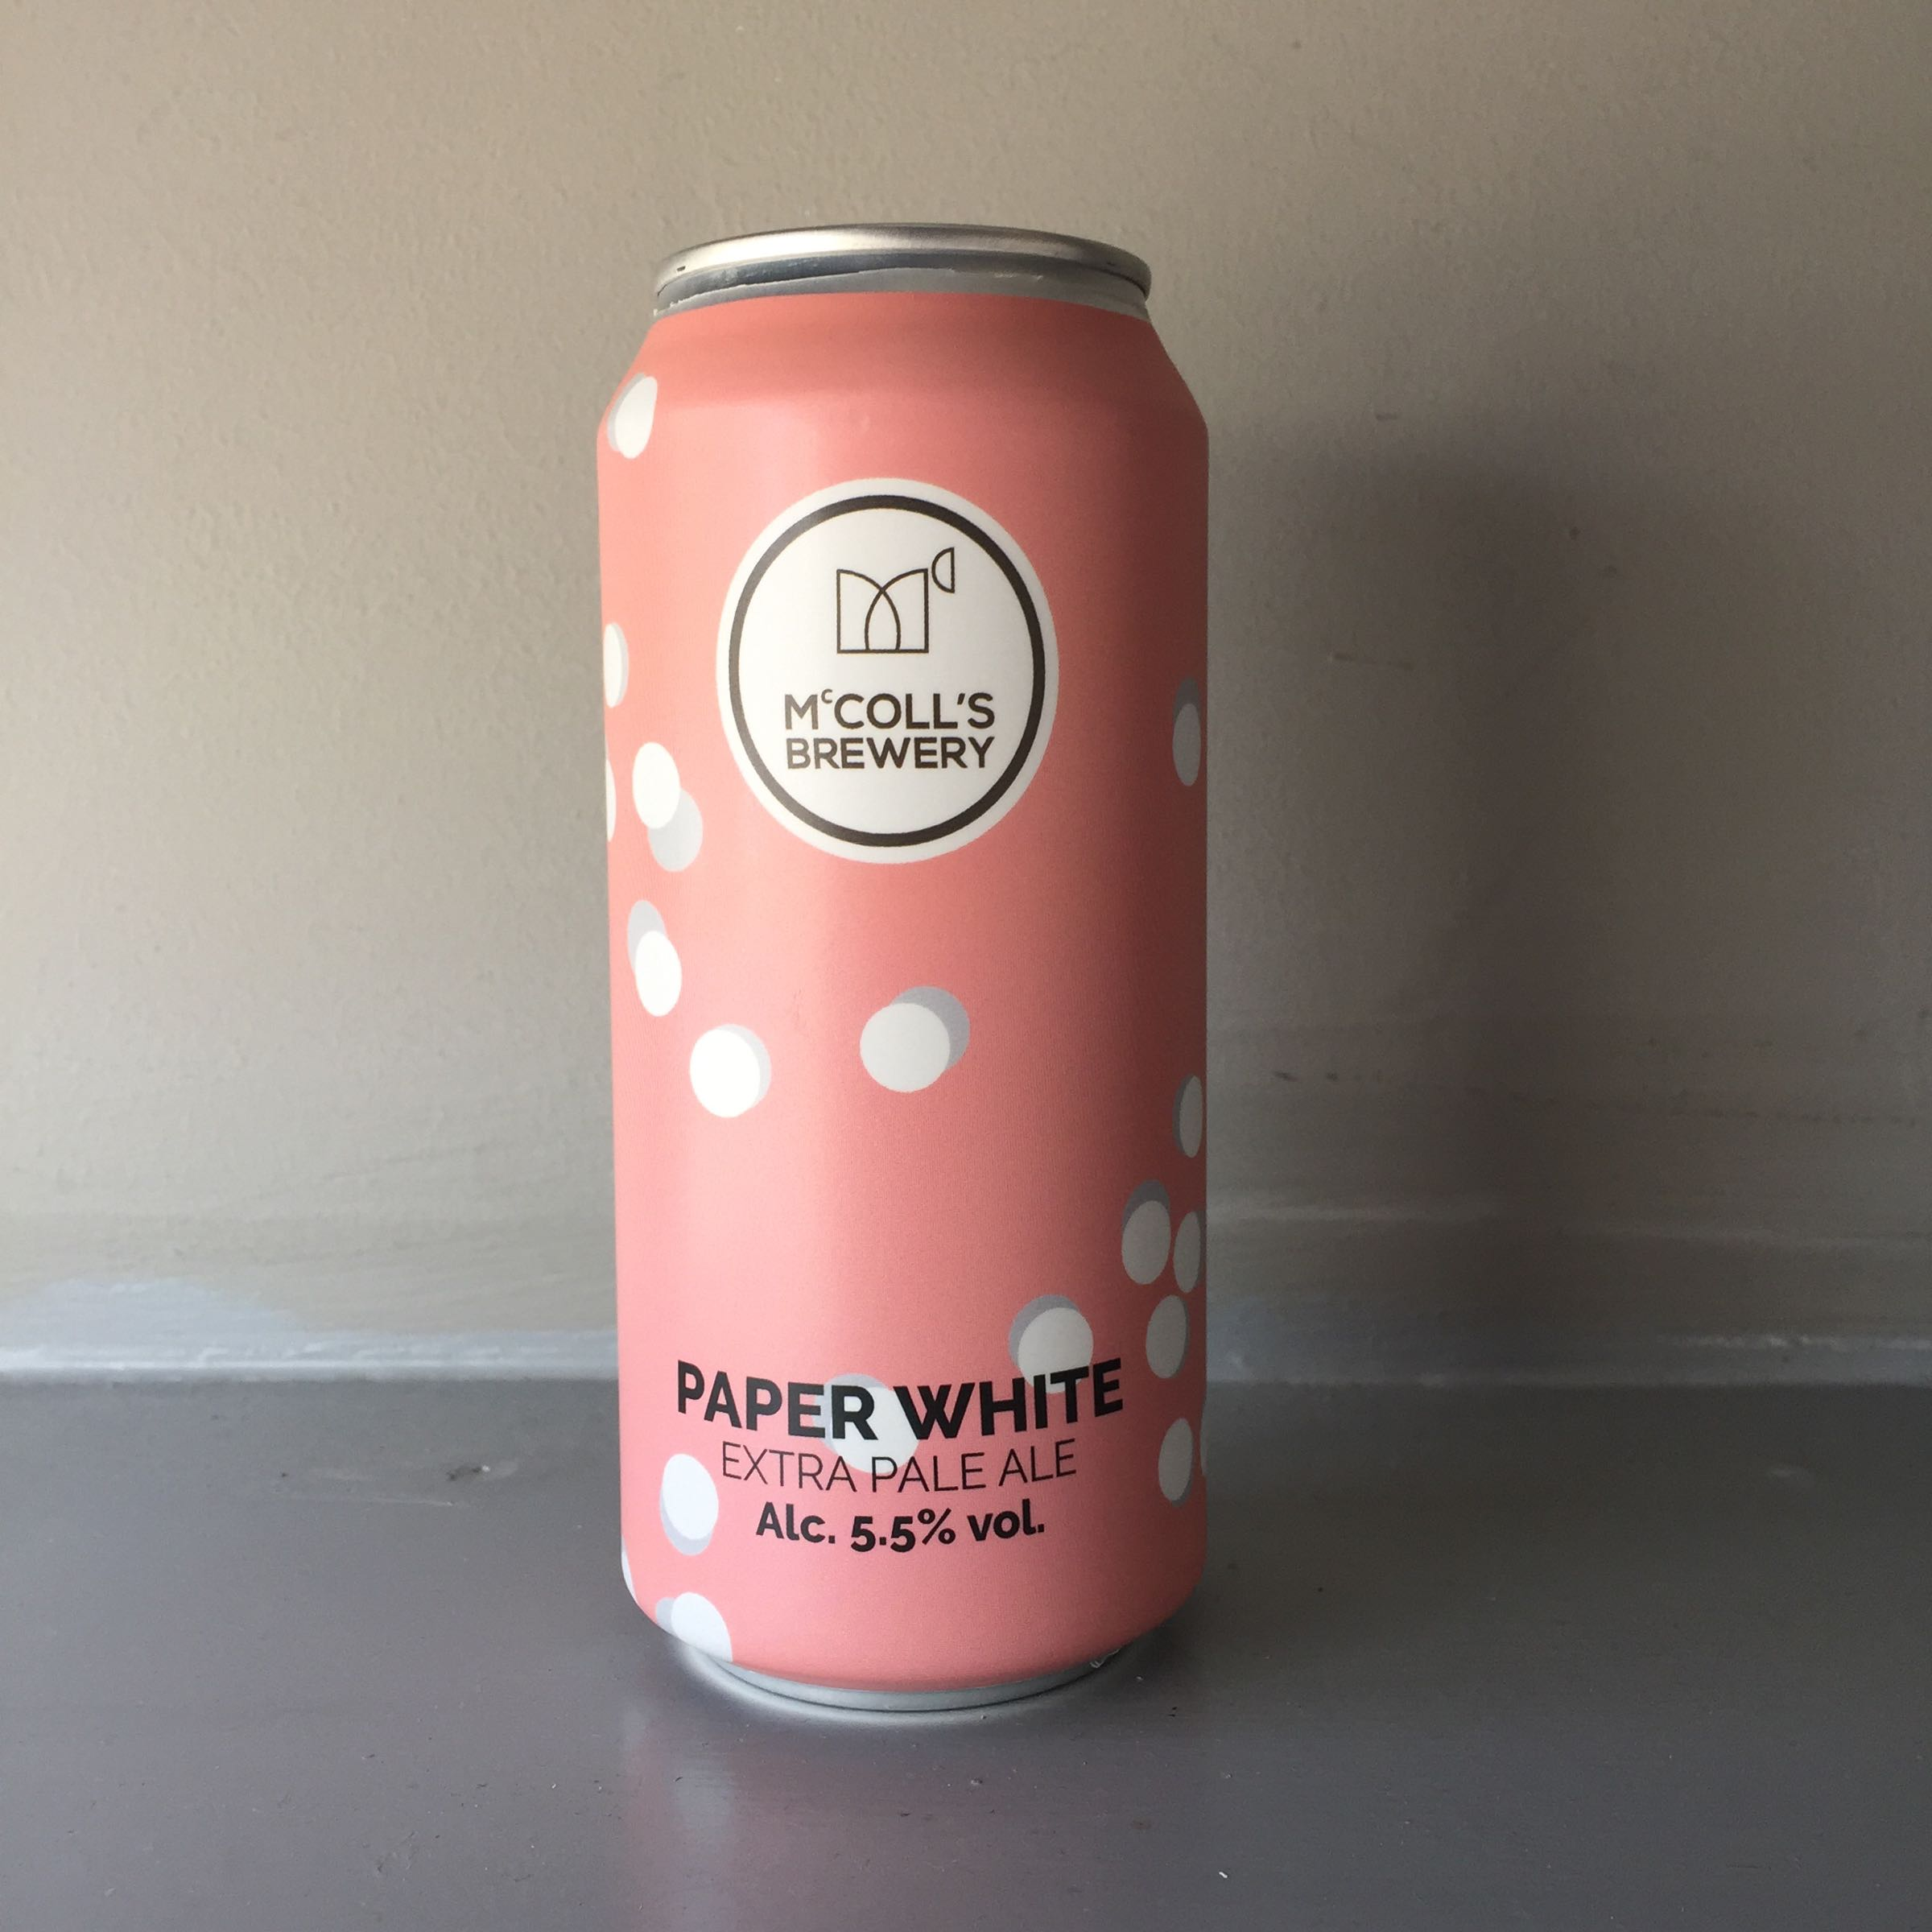 McColls Brewery 'Paper White' Extra Pale Ale 440ml 5.5% ABV